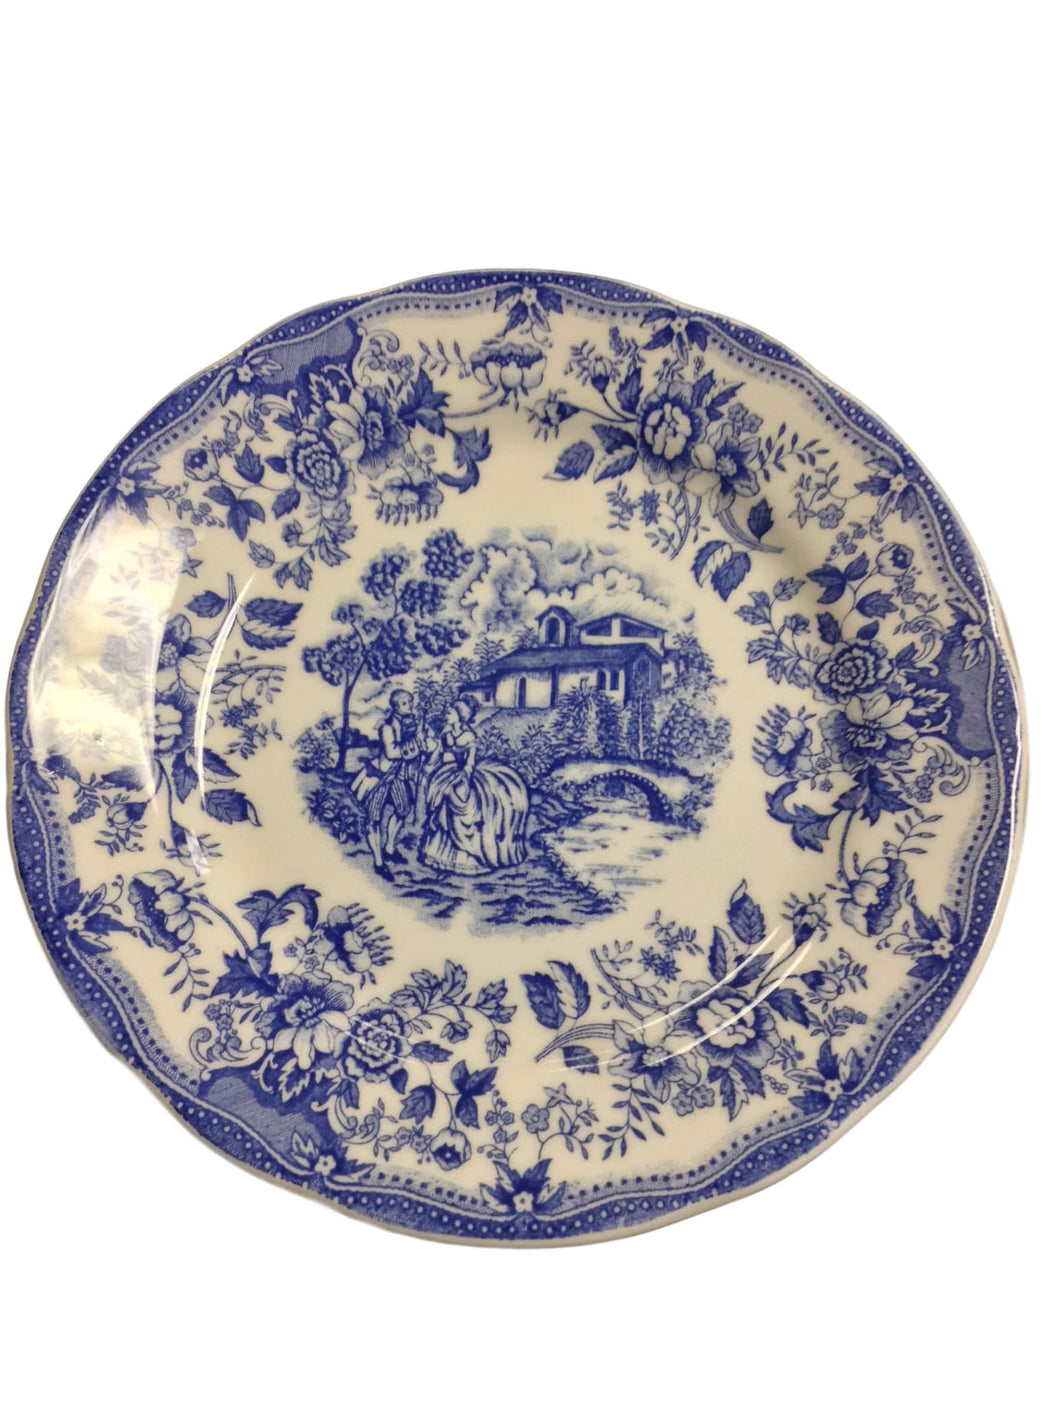 Underglazed Collectable Plate